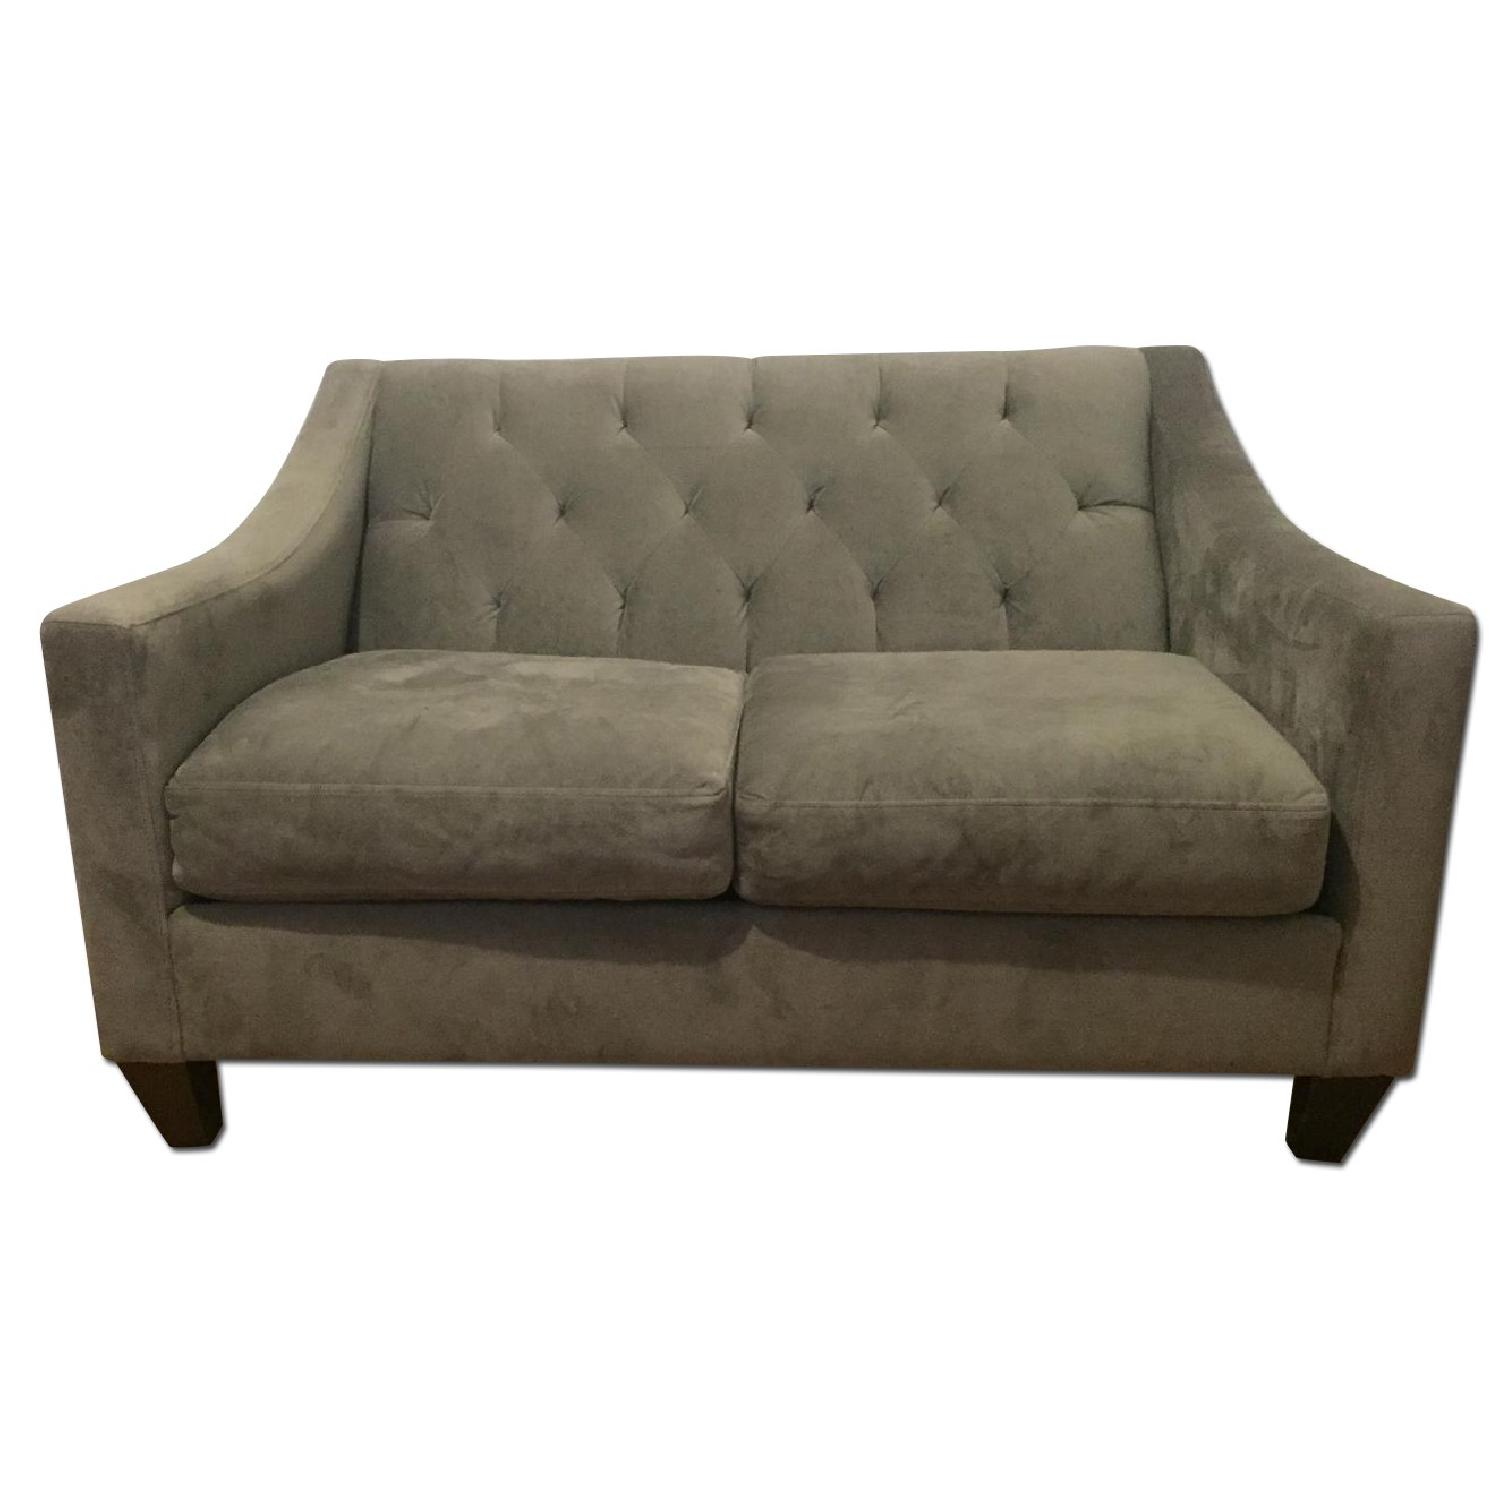 Macy's Max Home Furniture Grey Loveseat + Matching Armchair - image-0